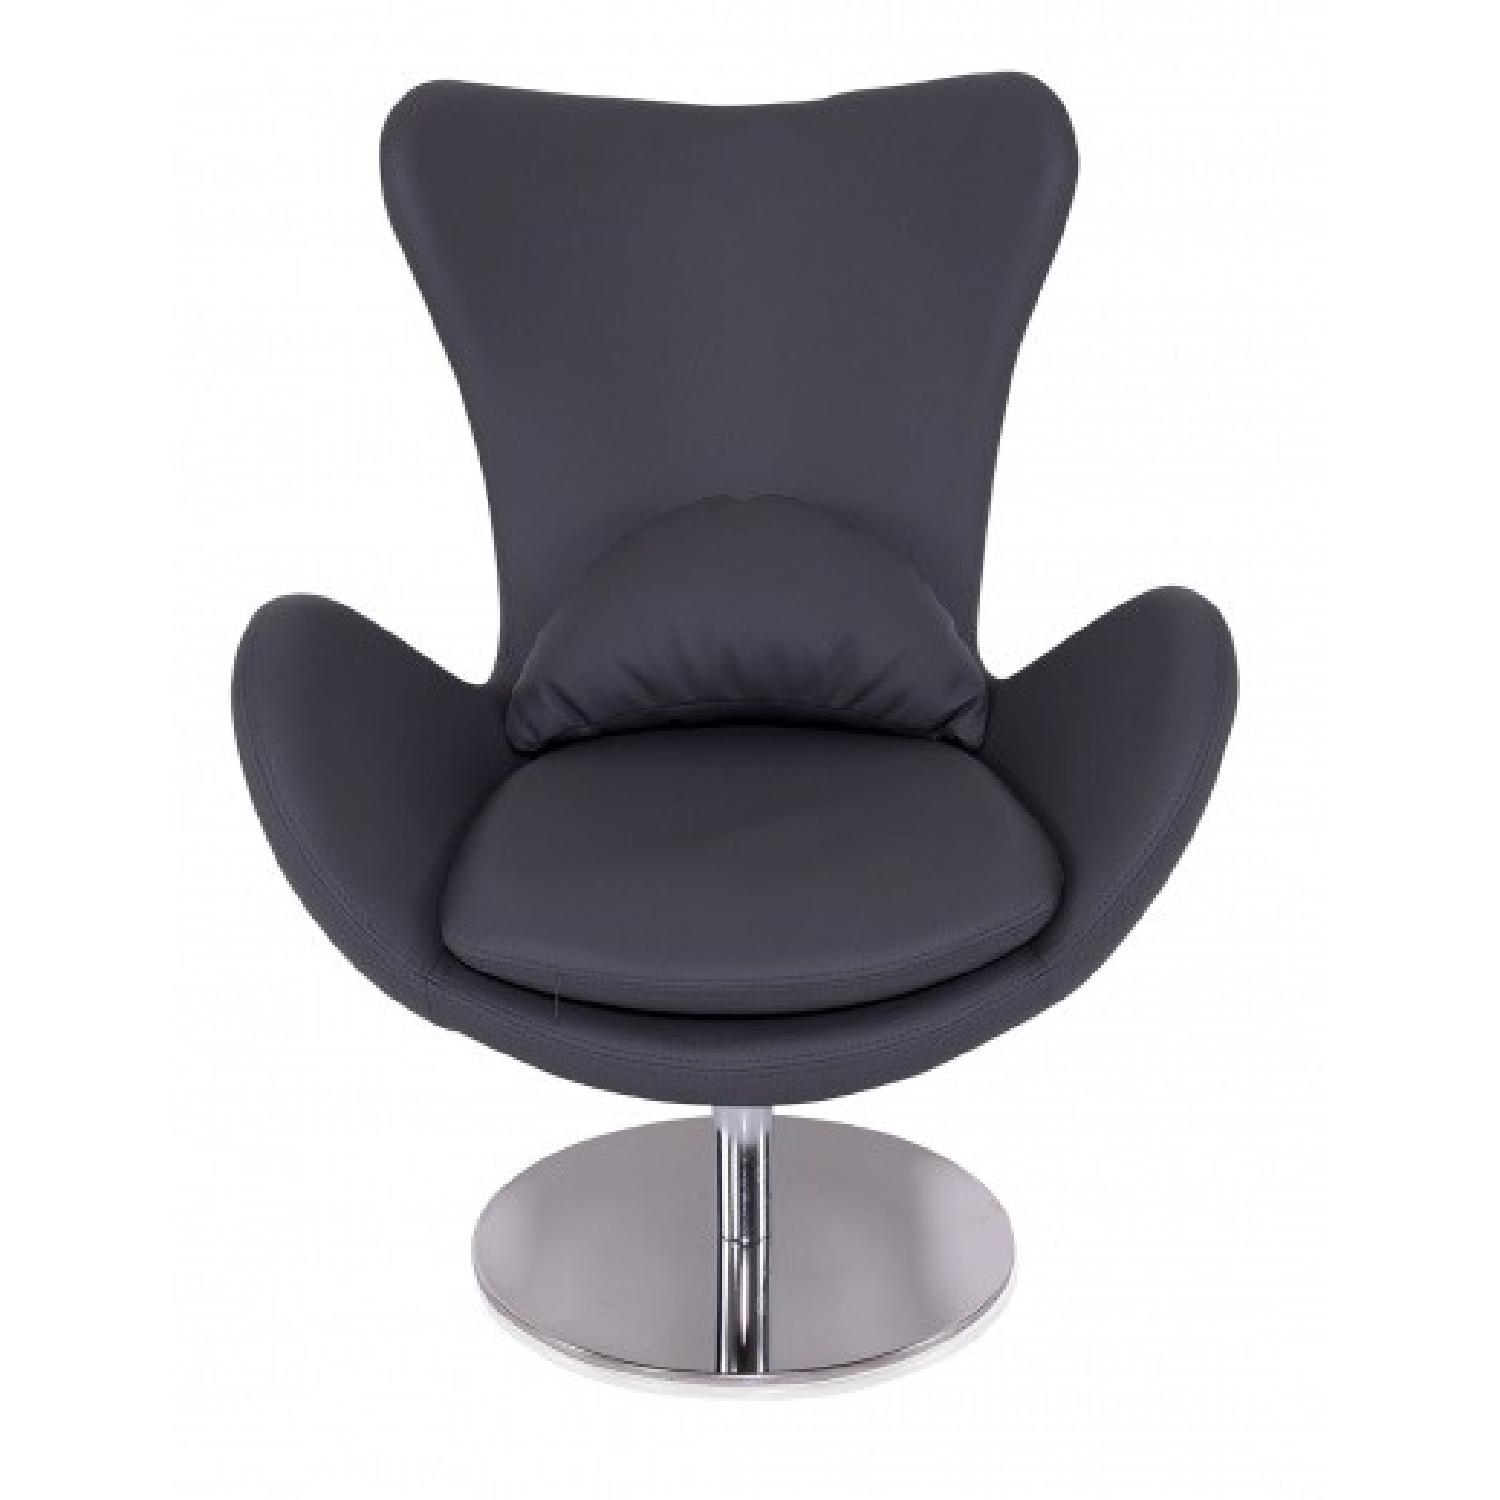 Modani Milton Modern Arm Chair in Gray